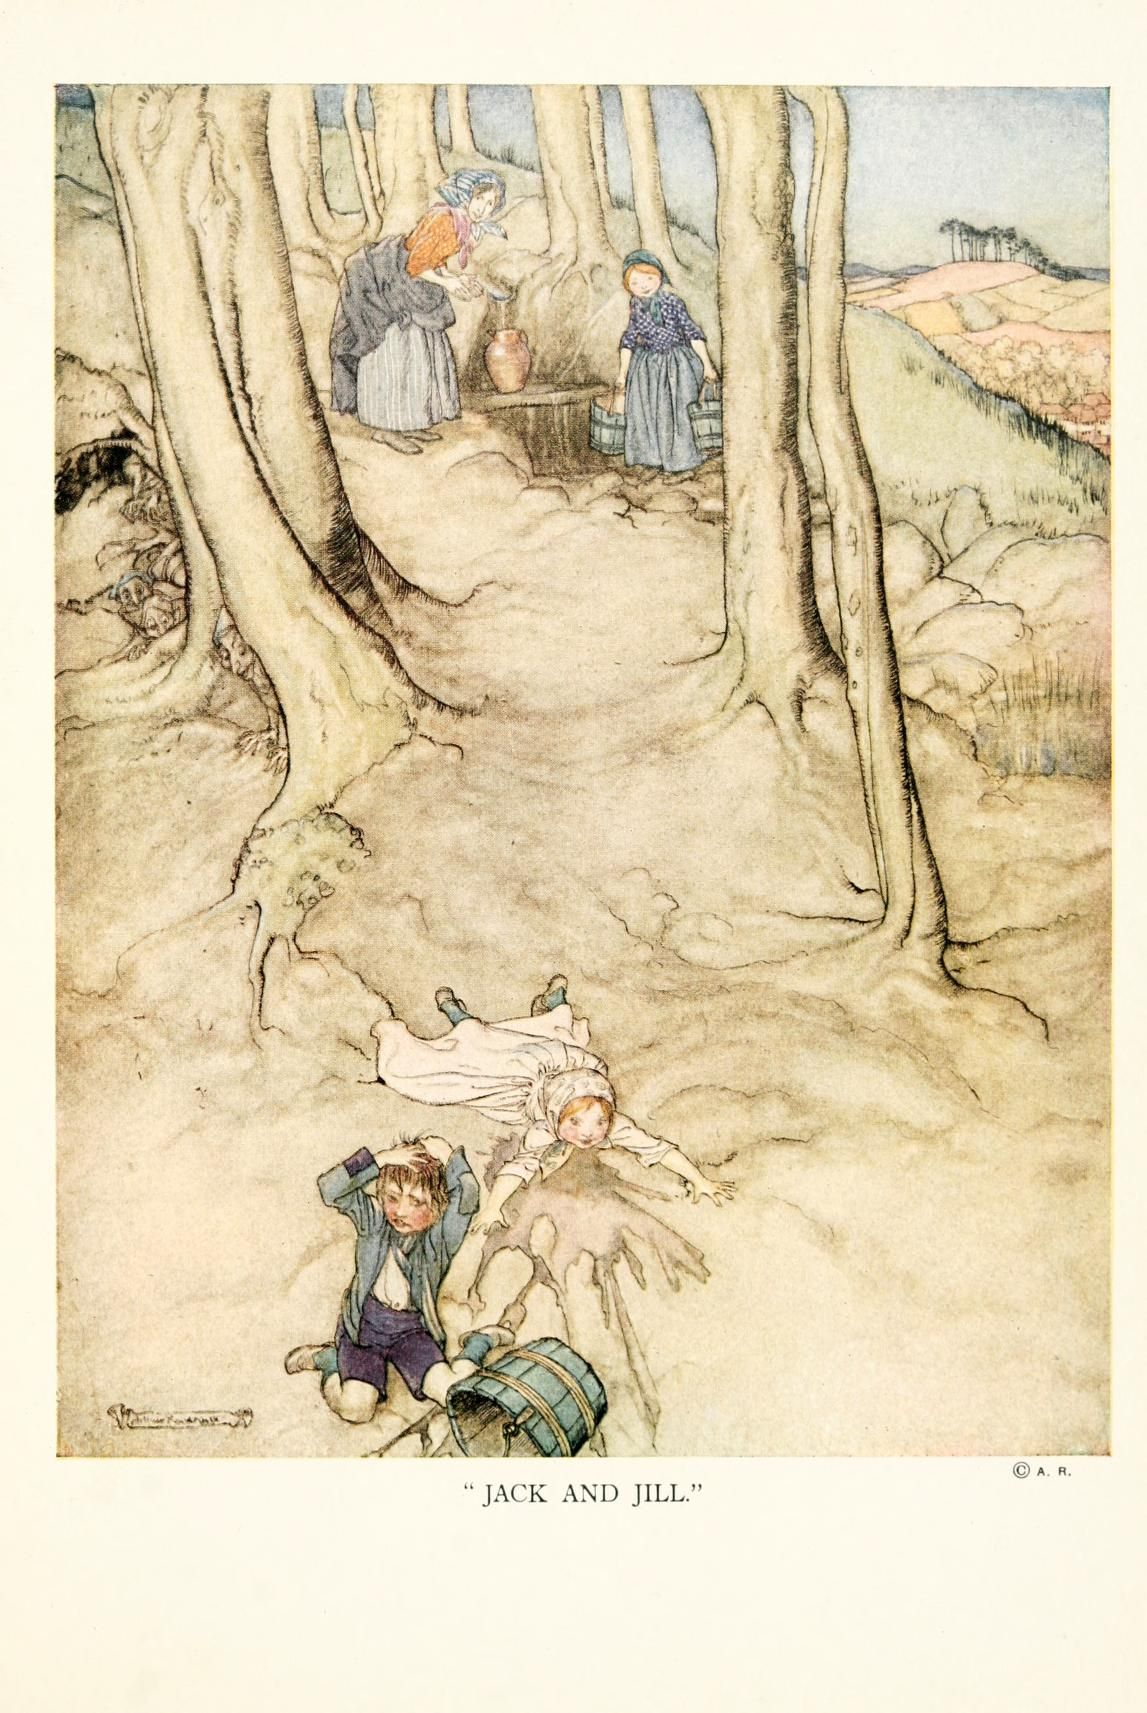 Arthur Rackham /The old nursery rhymes | Arthur Rackham | Pinterest ...